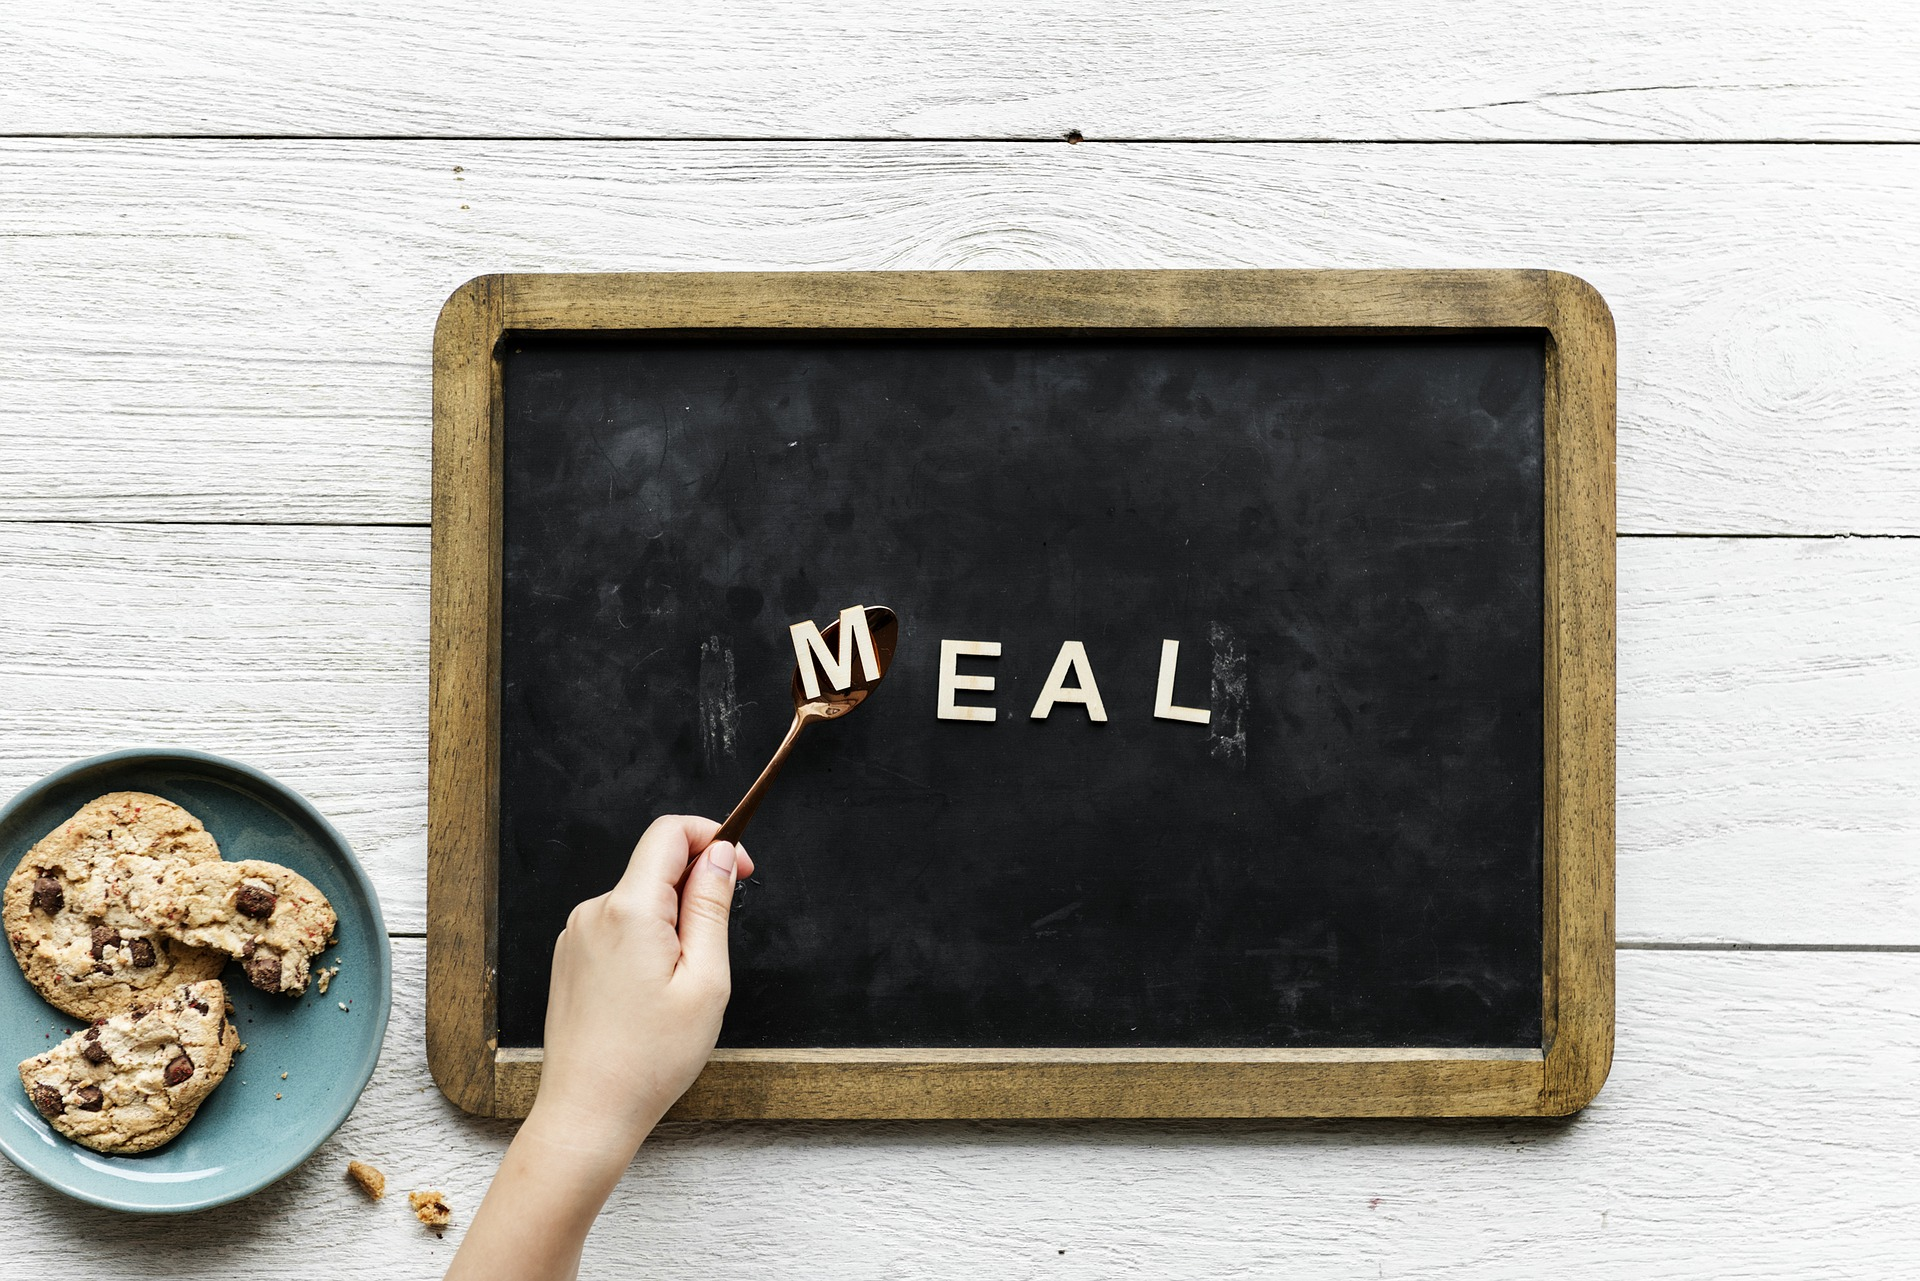 February meal plan ideas board with the word meal spelt out on a chalkboard and a fork